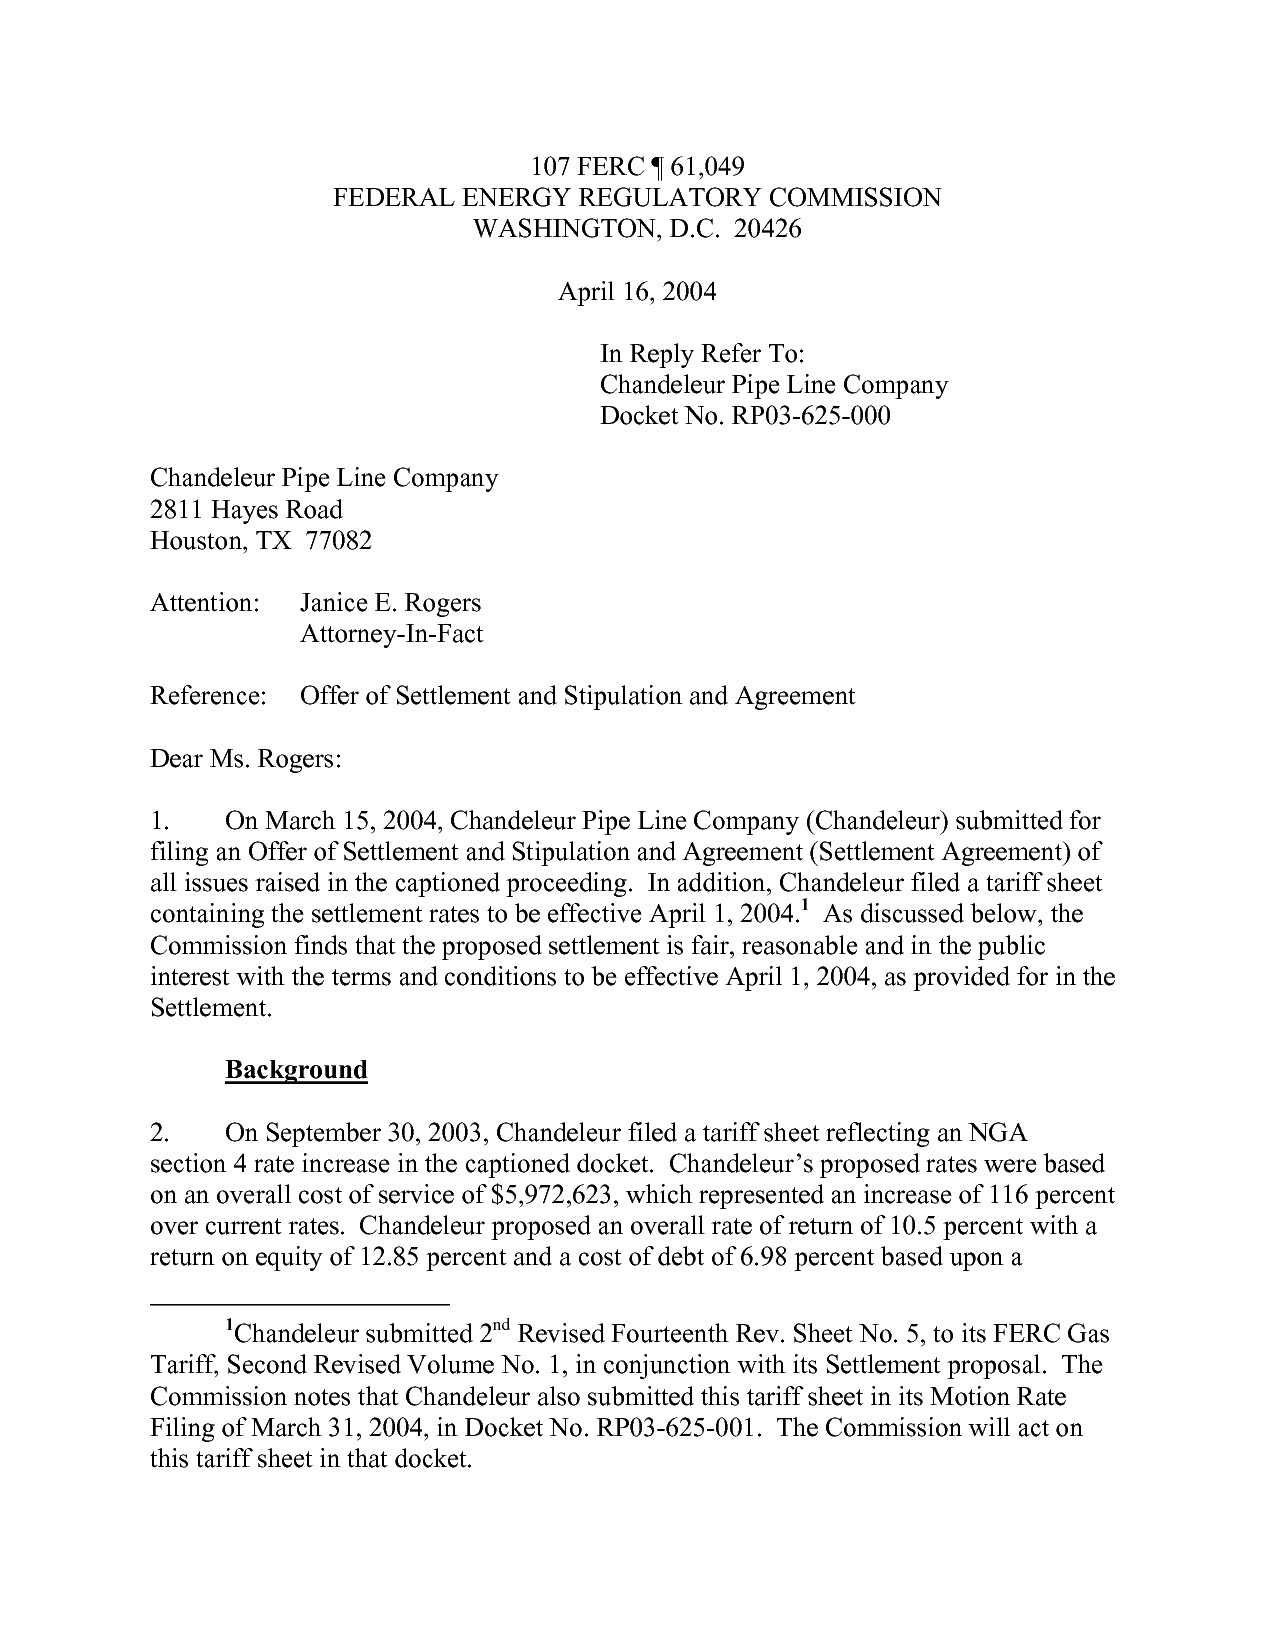 Legal Settlement Offer Letter Template Examples | Letter Cover